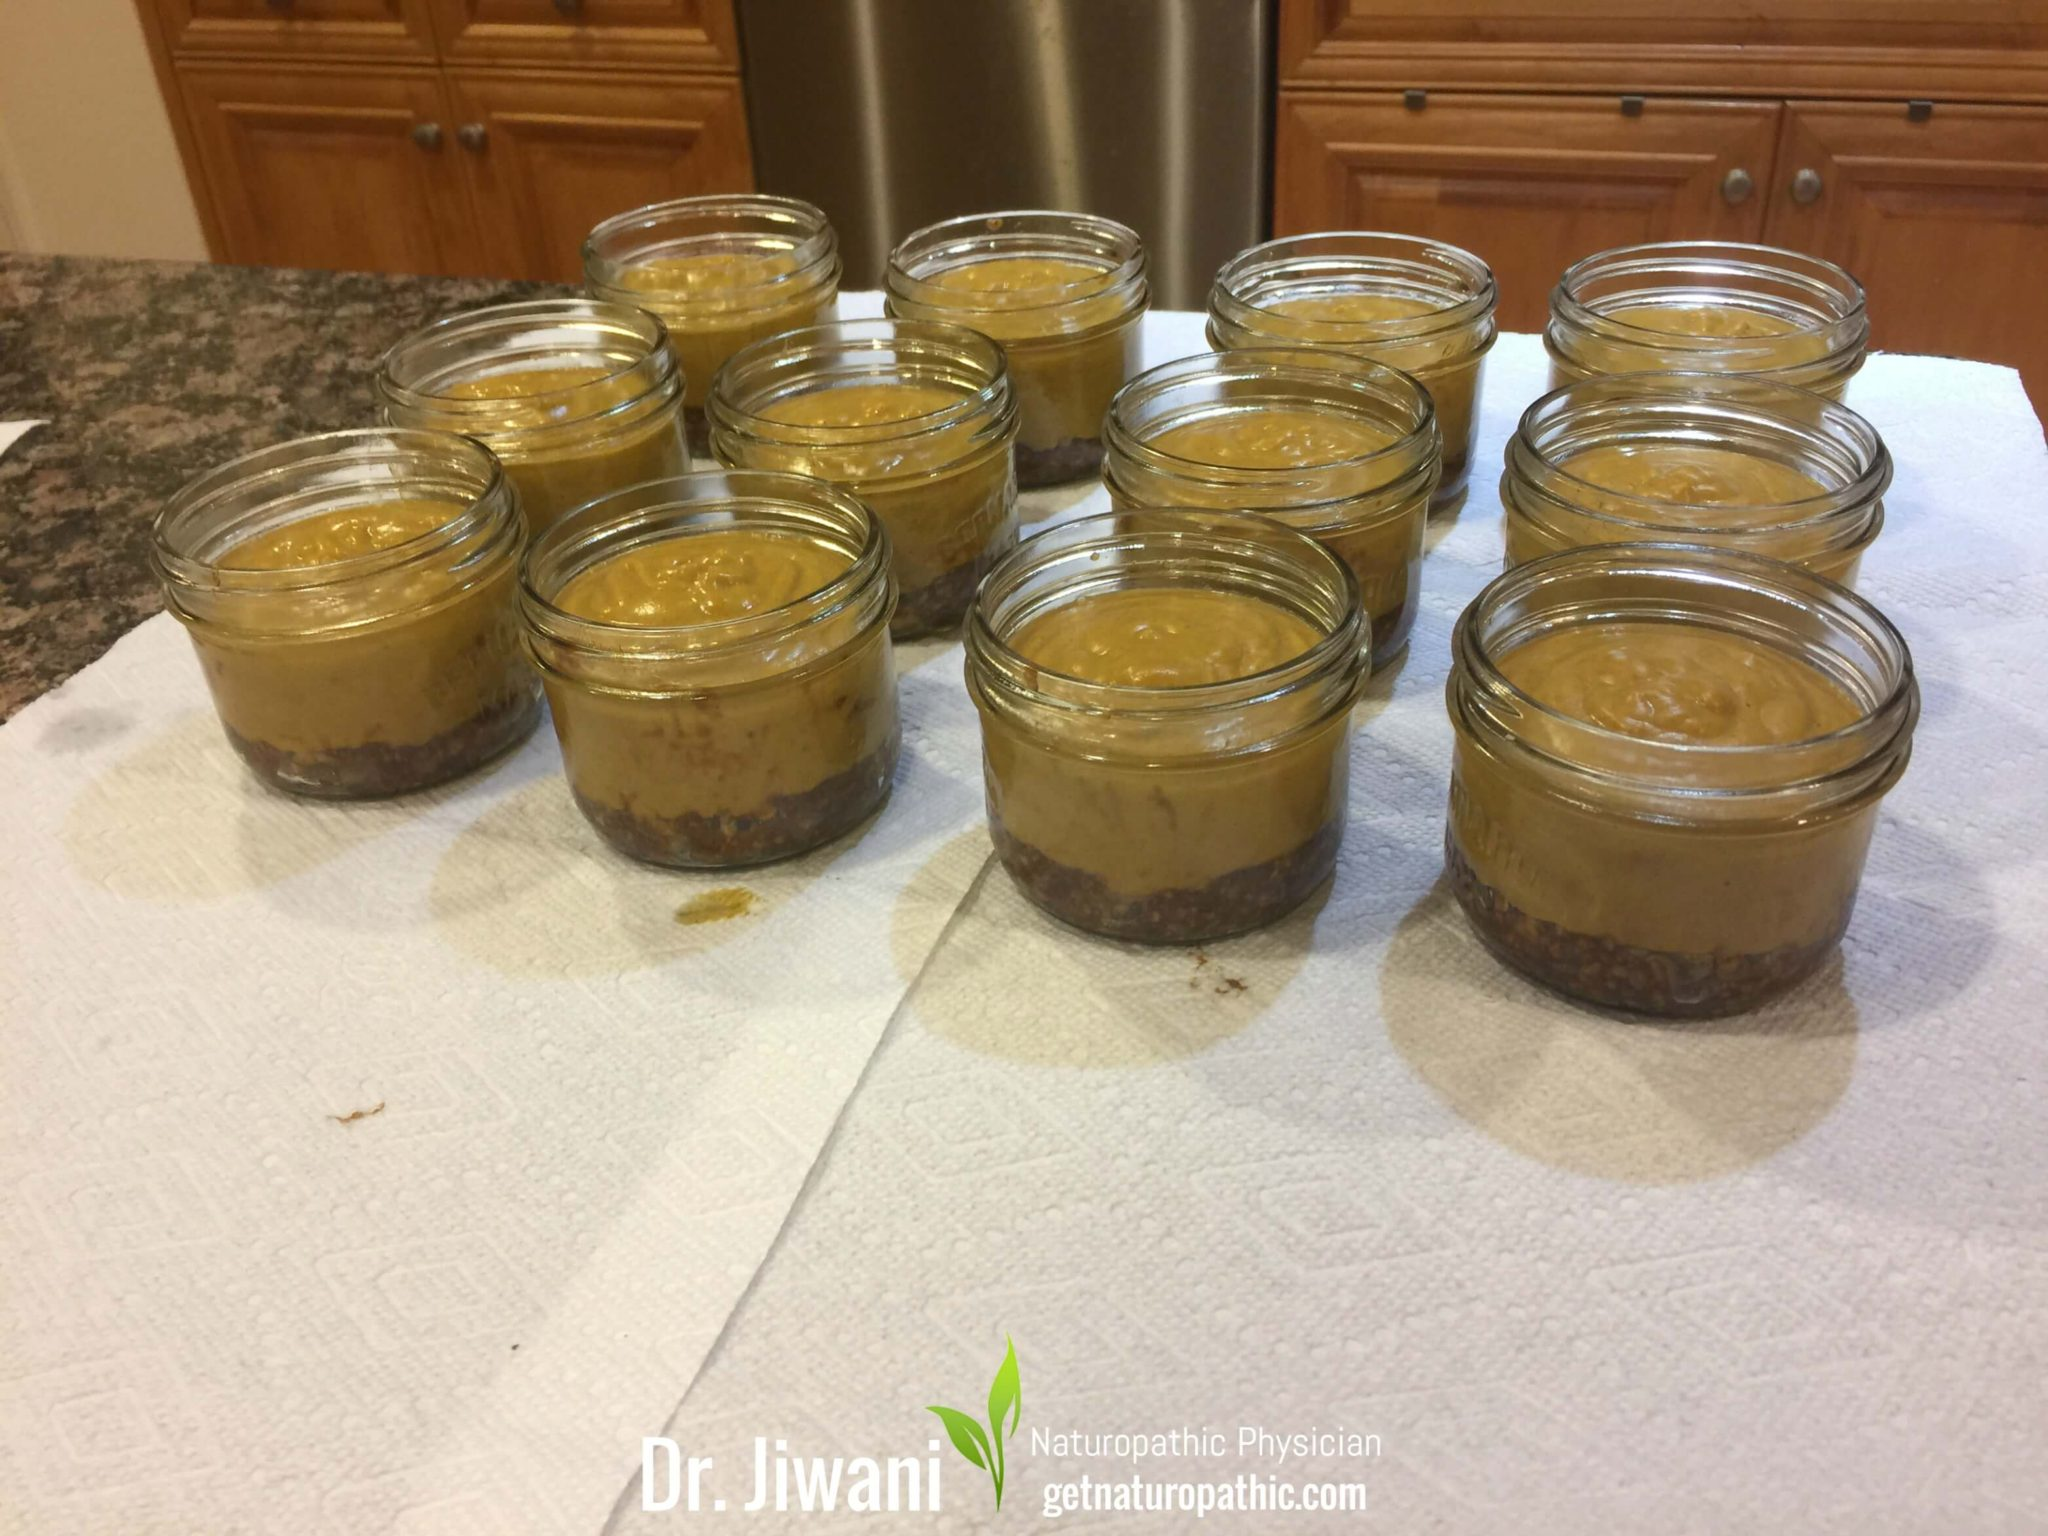 Dr. Jiwani's Pumpkin Pie Filling is Flavourful, Low Carb, Gluten-Free, Egg-Free, Dairy-Free, Soy-Free, Corn-Free, Ideal For Paleo, Keto, Vegan & Allergy-Free Diets | Dr. Jiwani's Naturopathic Nuggets Blog